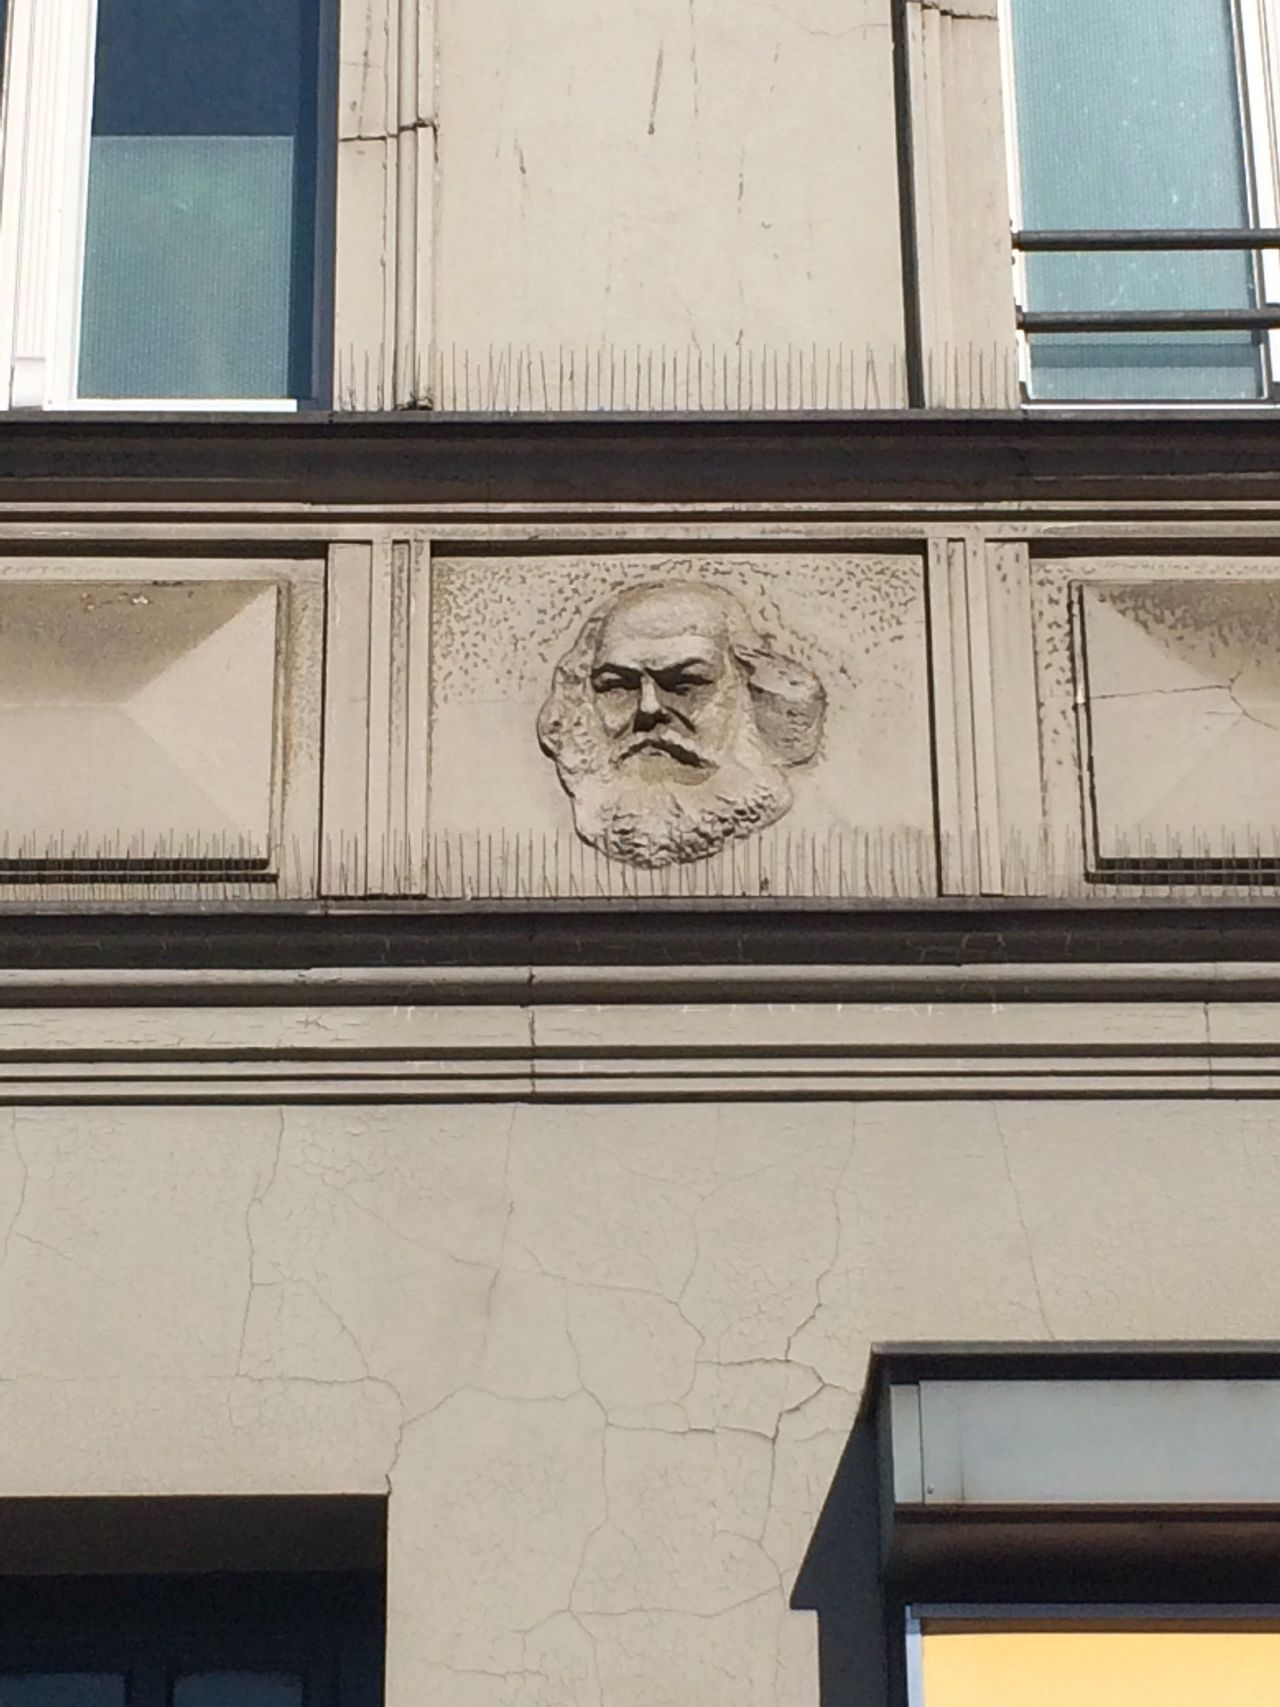 Building Exterior Built Structure Architecture Window Low Angle View No People Day Bird Outdoors Karl Marx Neukölln Hermannplatz Sculpture Animal Themes Statue